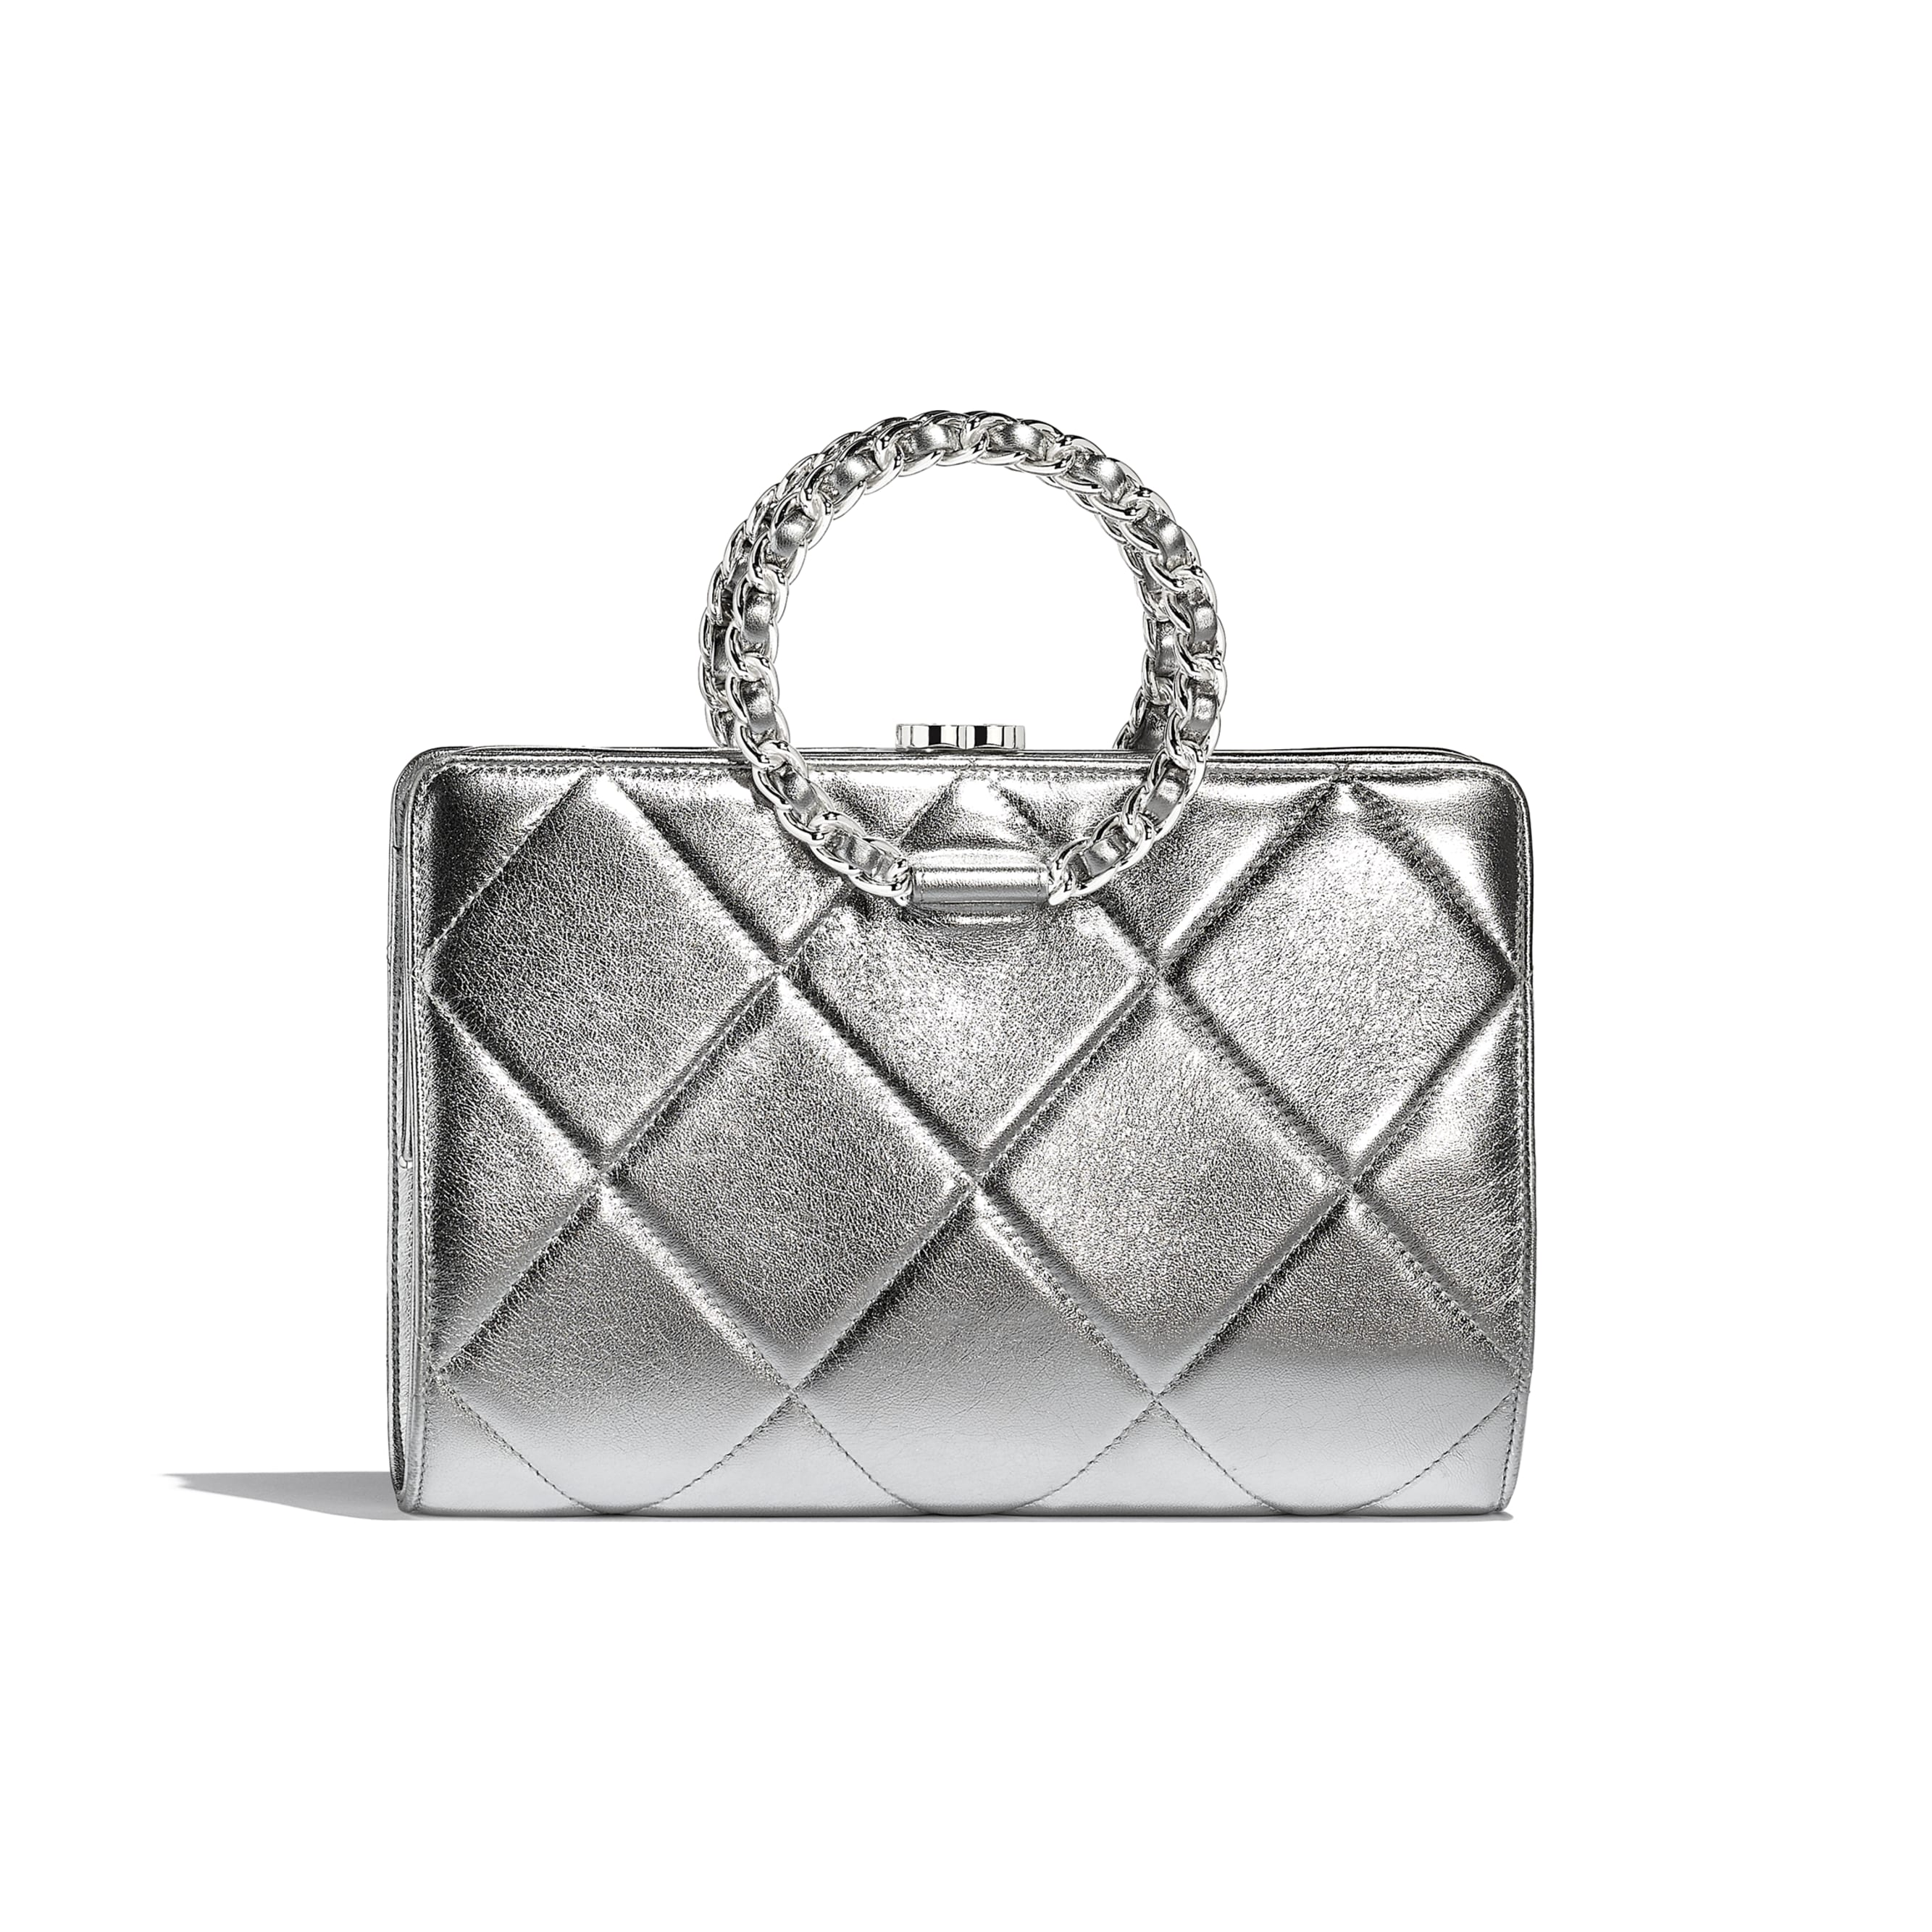 Clutch - Silver - Metallic Crumpled Lambskin & Silver-Tone Metal  - Default view - see standard sized version